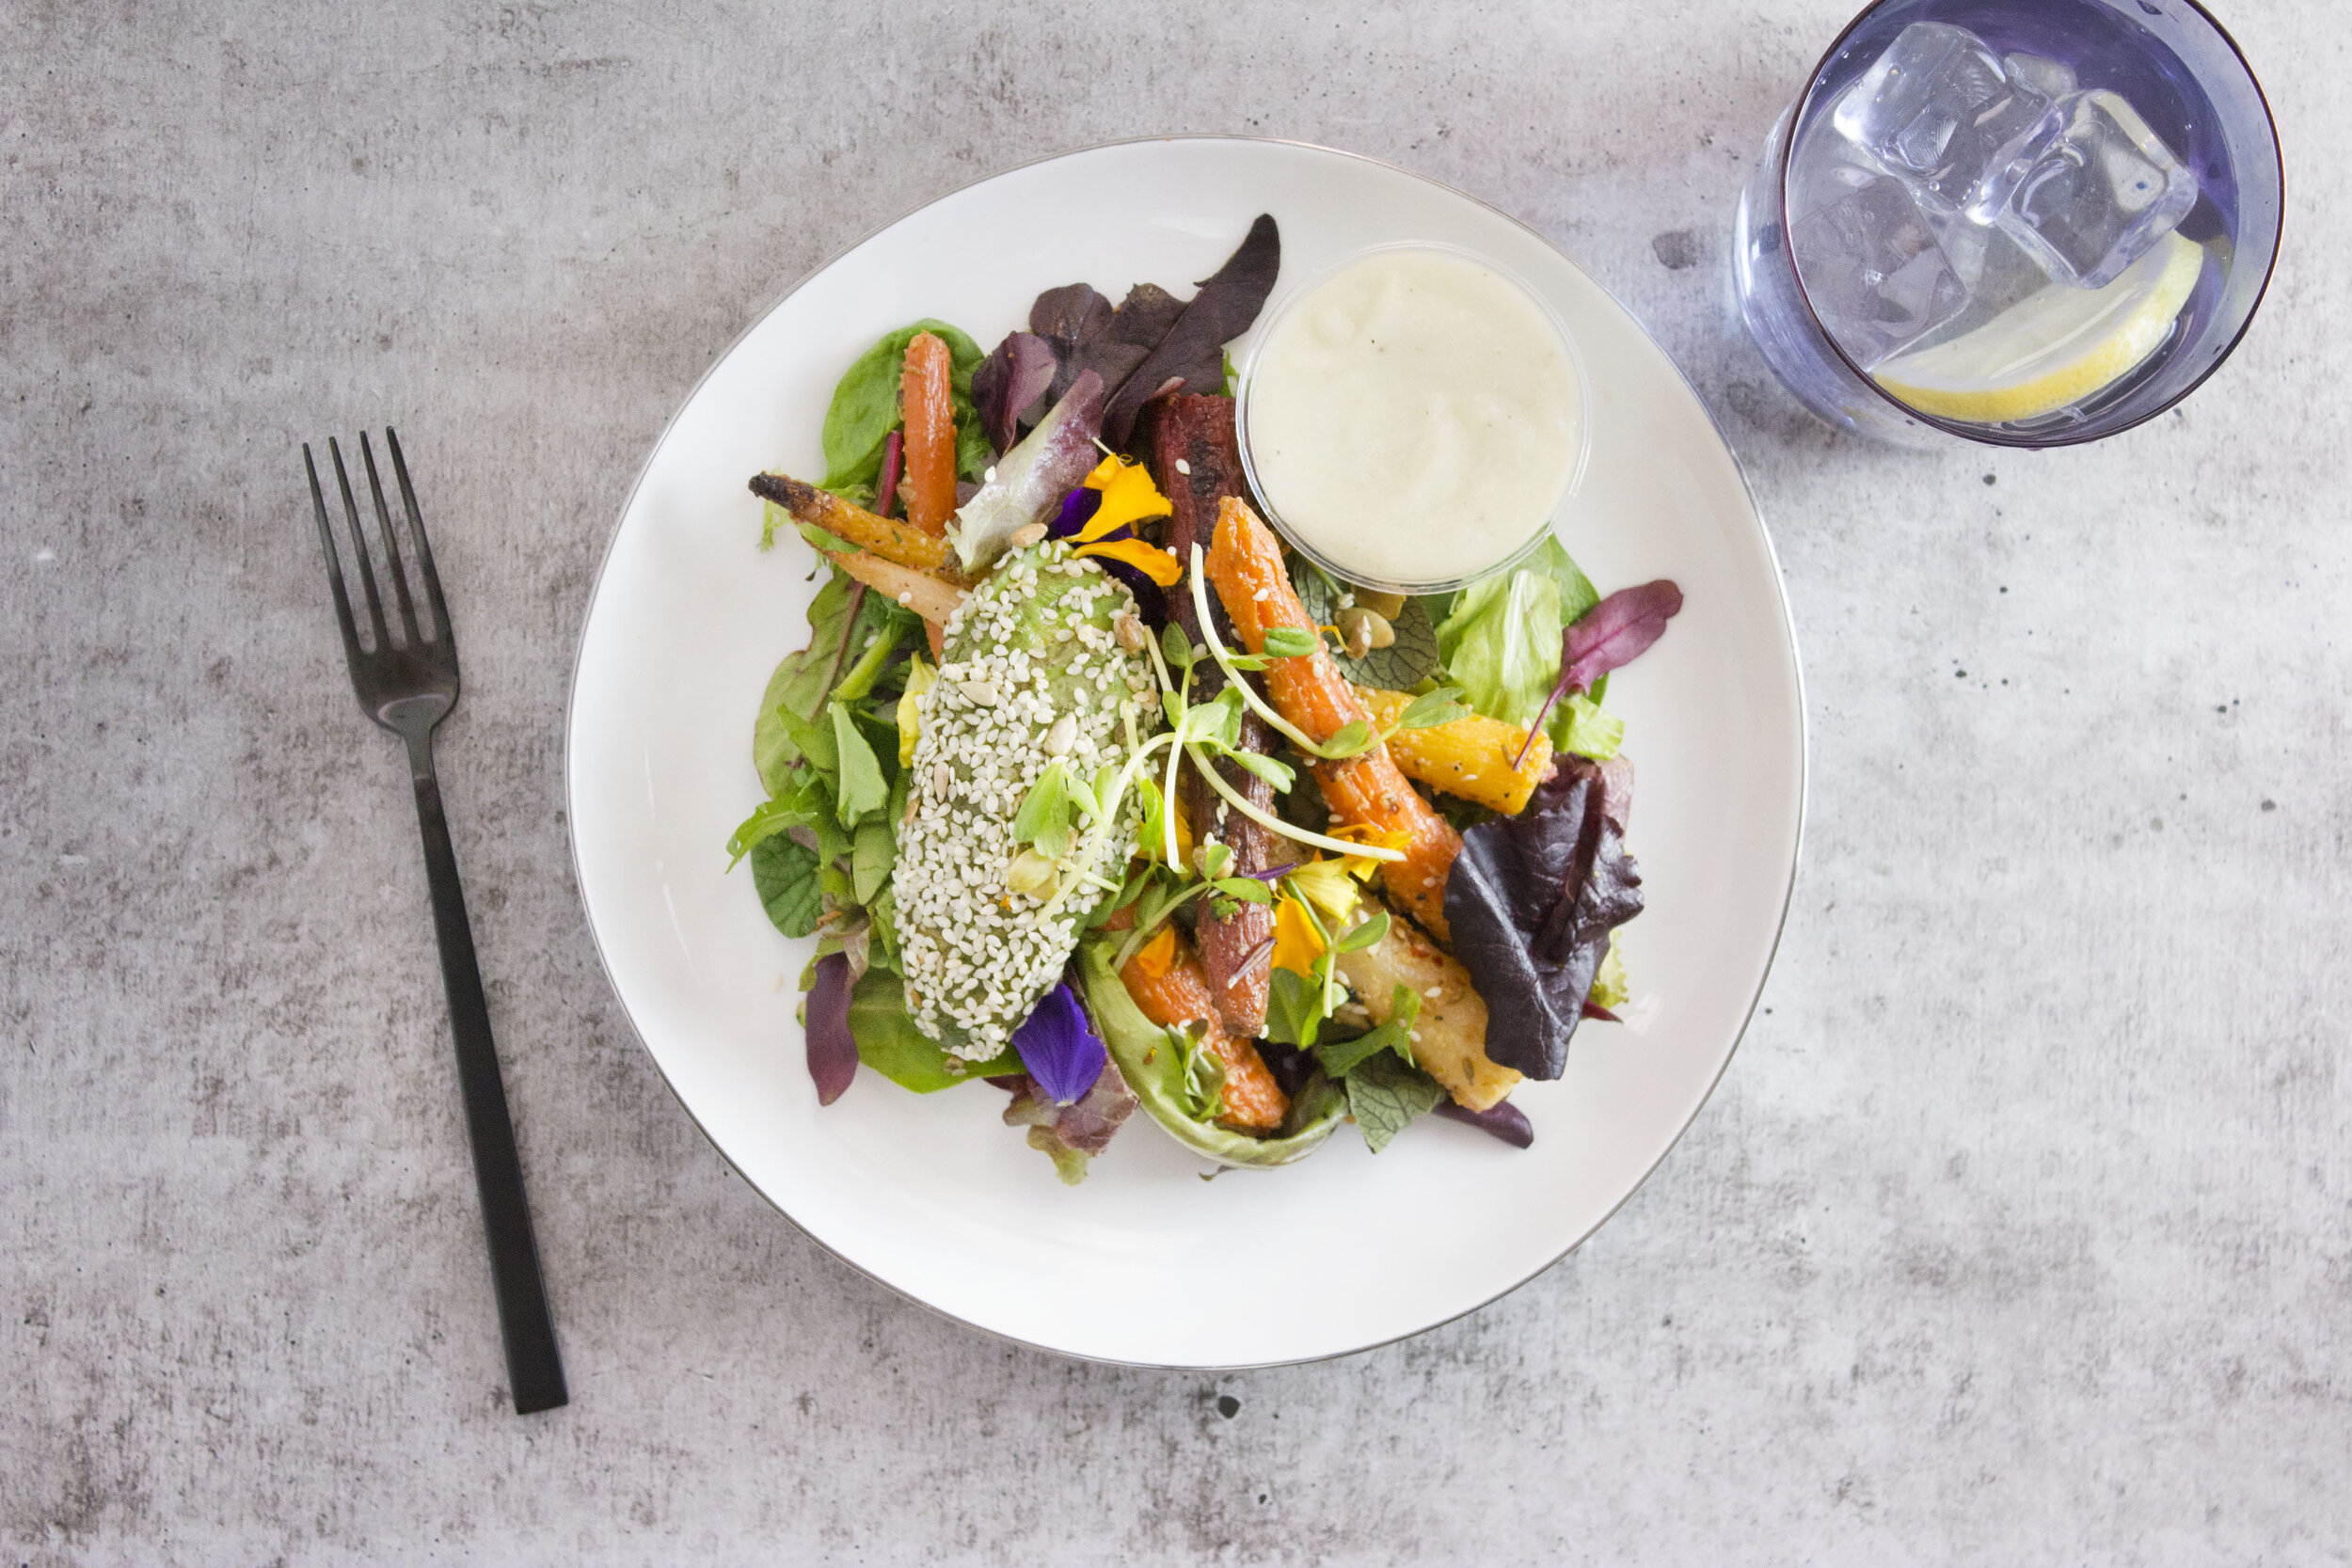 Lunch: Citrus Carrot Salad with Herbed Coconut Dressing